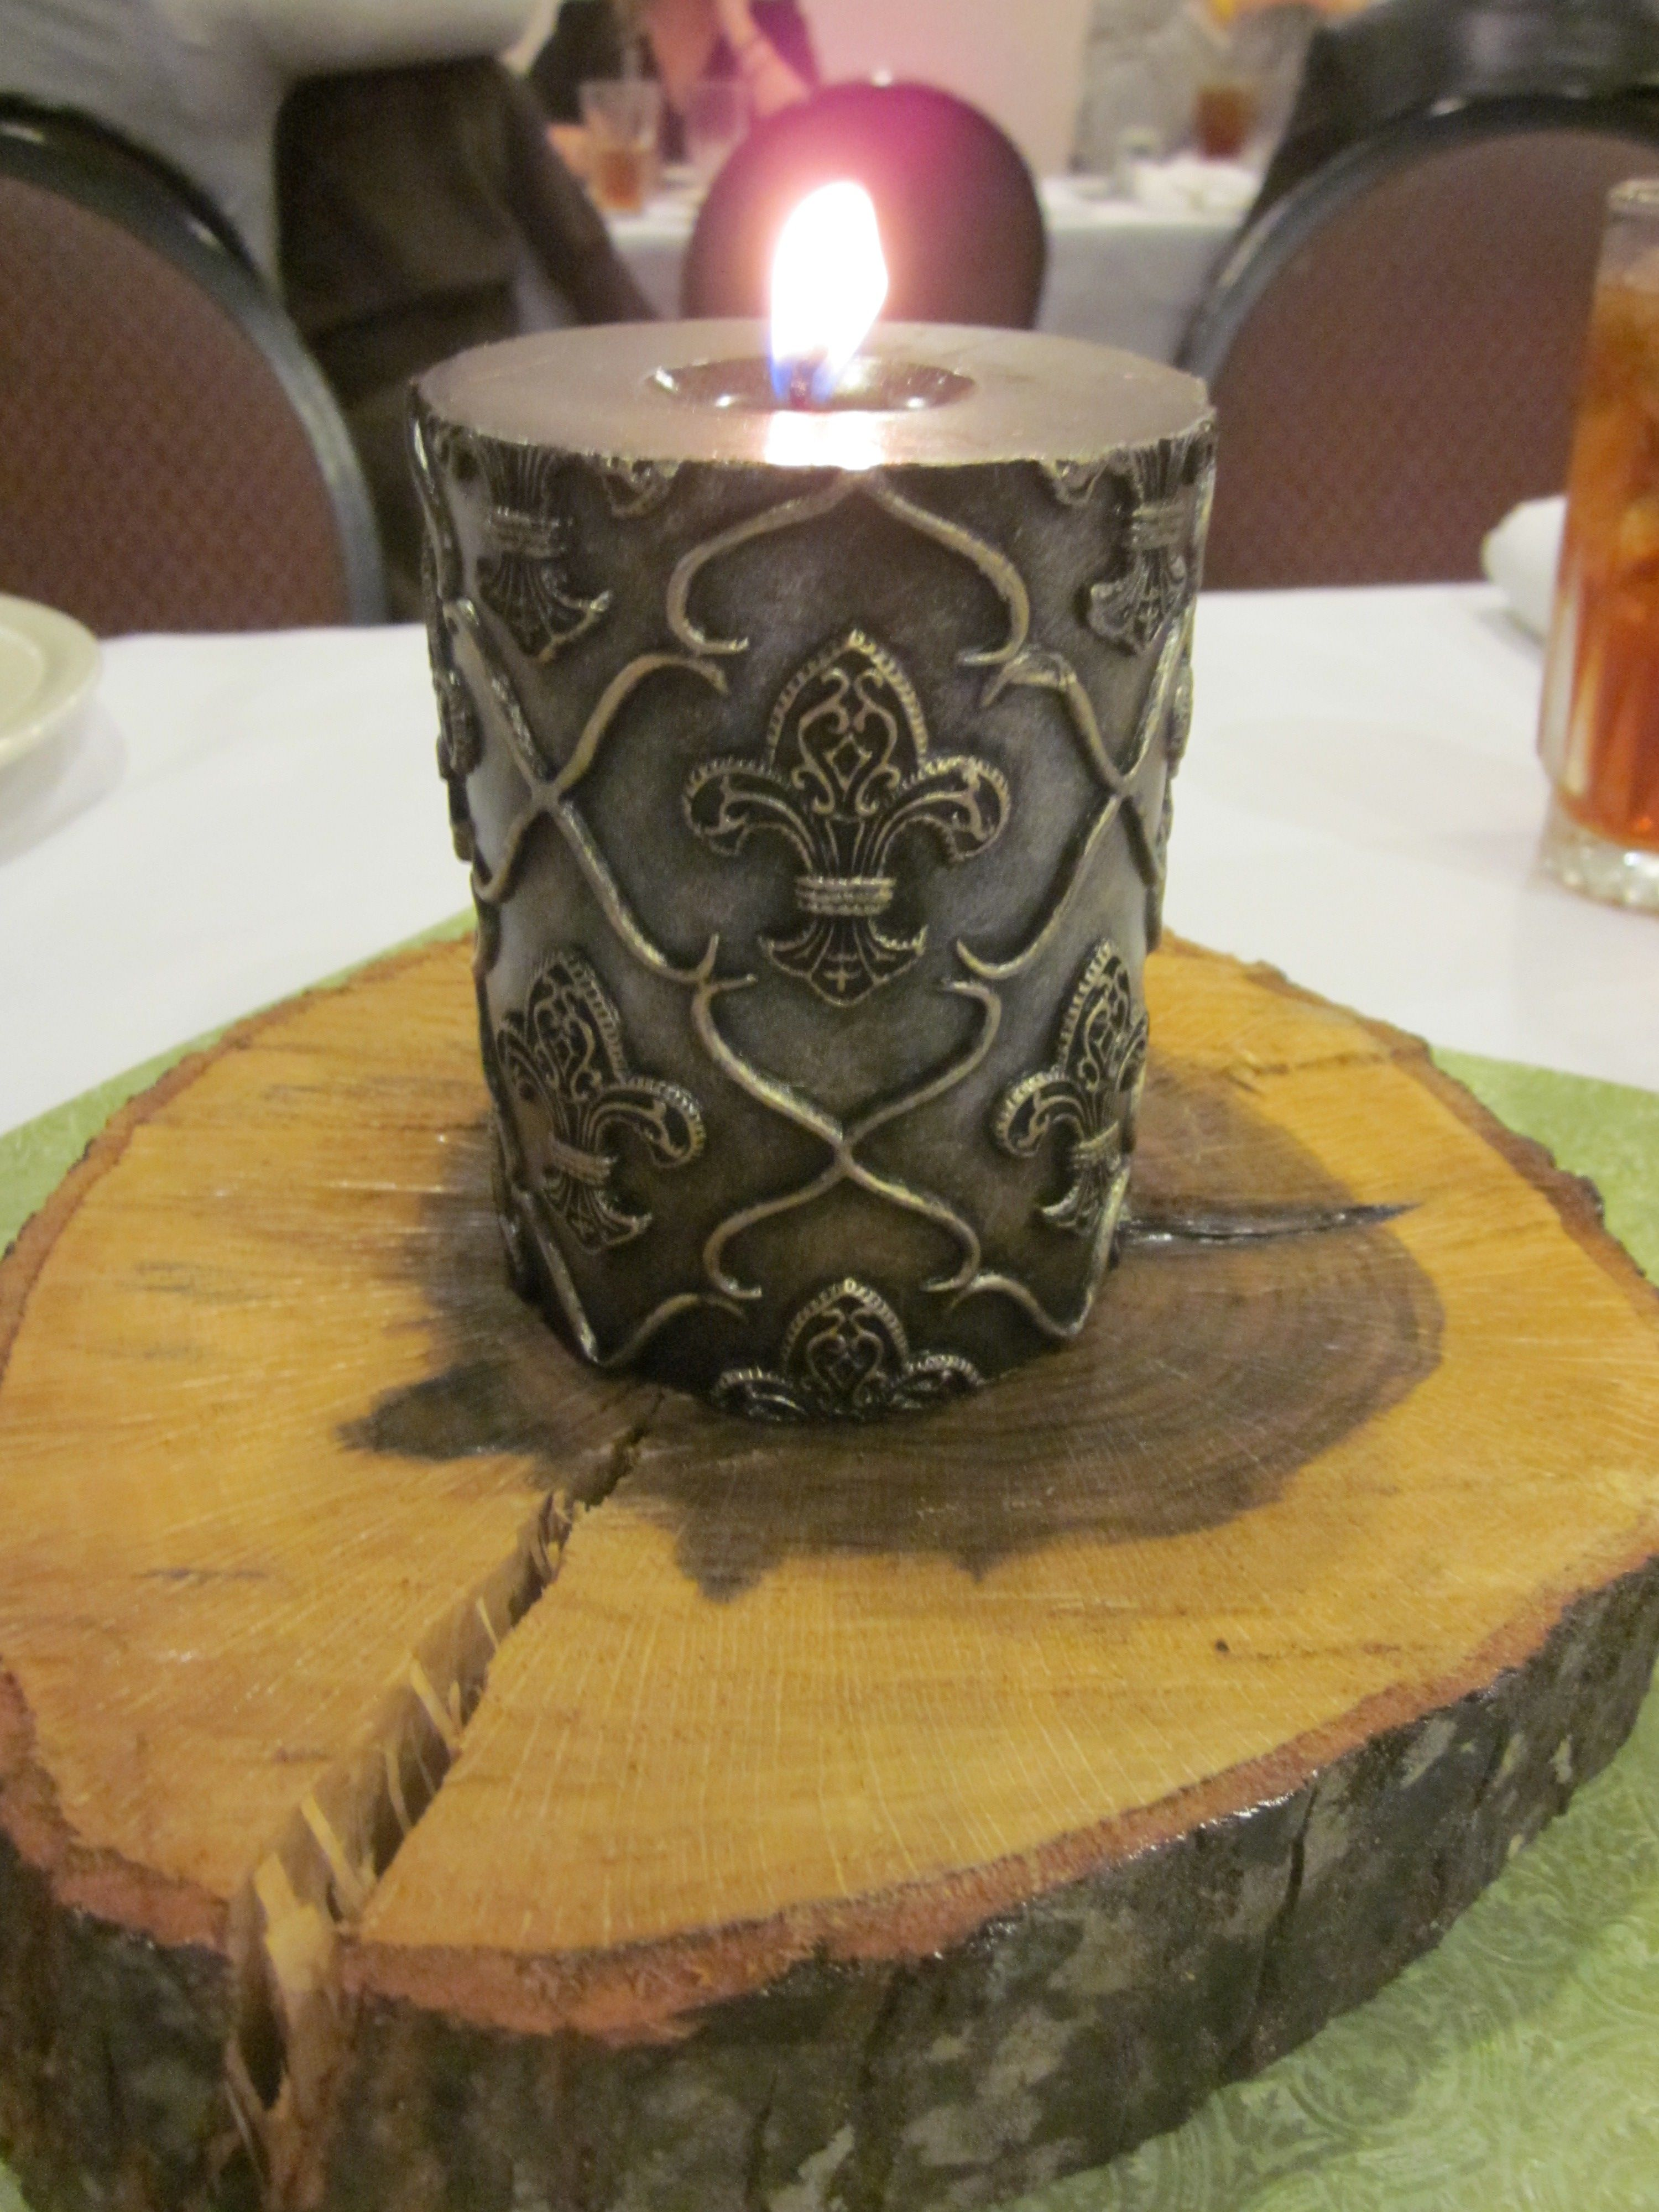 How to put scrapbook paper on wood - Also Used Candles And Put On Wood To Look Like Trees And Scrapbook Paper To